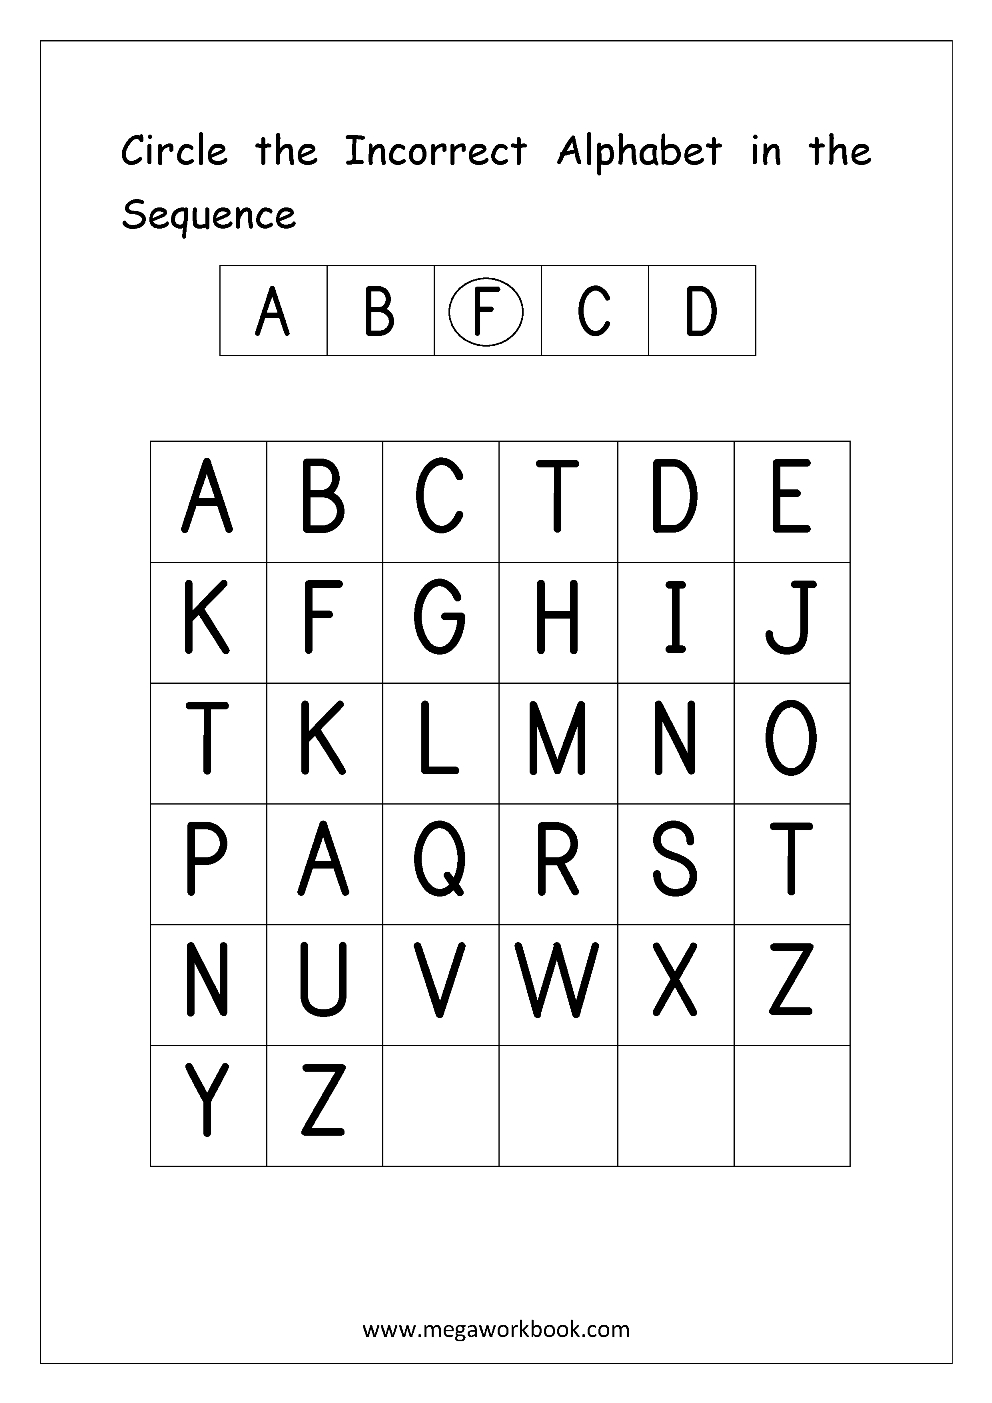 Alphabet Ordering Worksheet - Capital Letters - Circle pertaining to Alphabet Sequencing Worksheets For Kindergarten